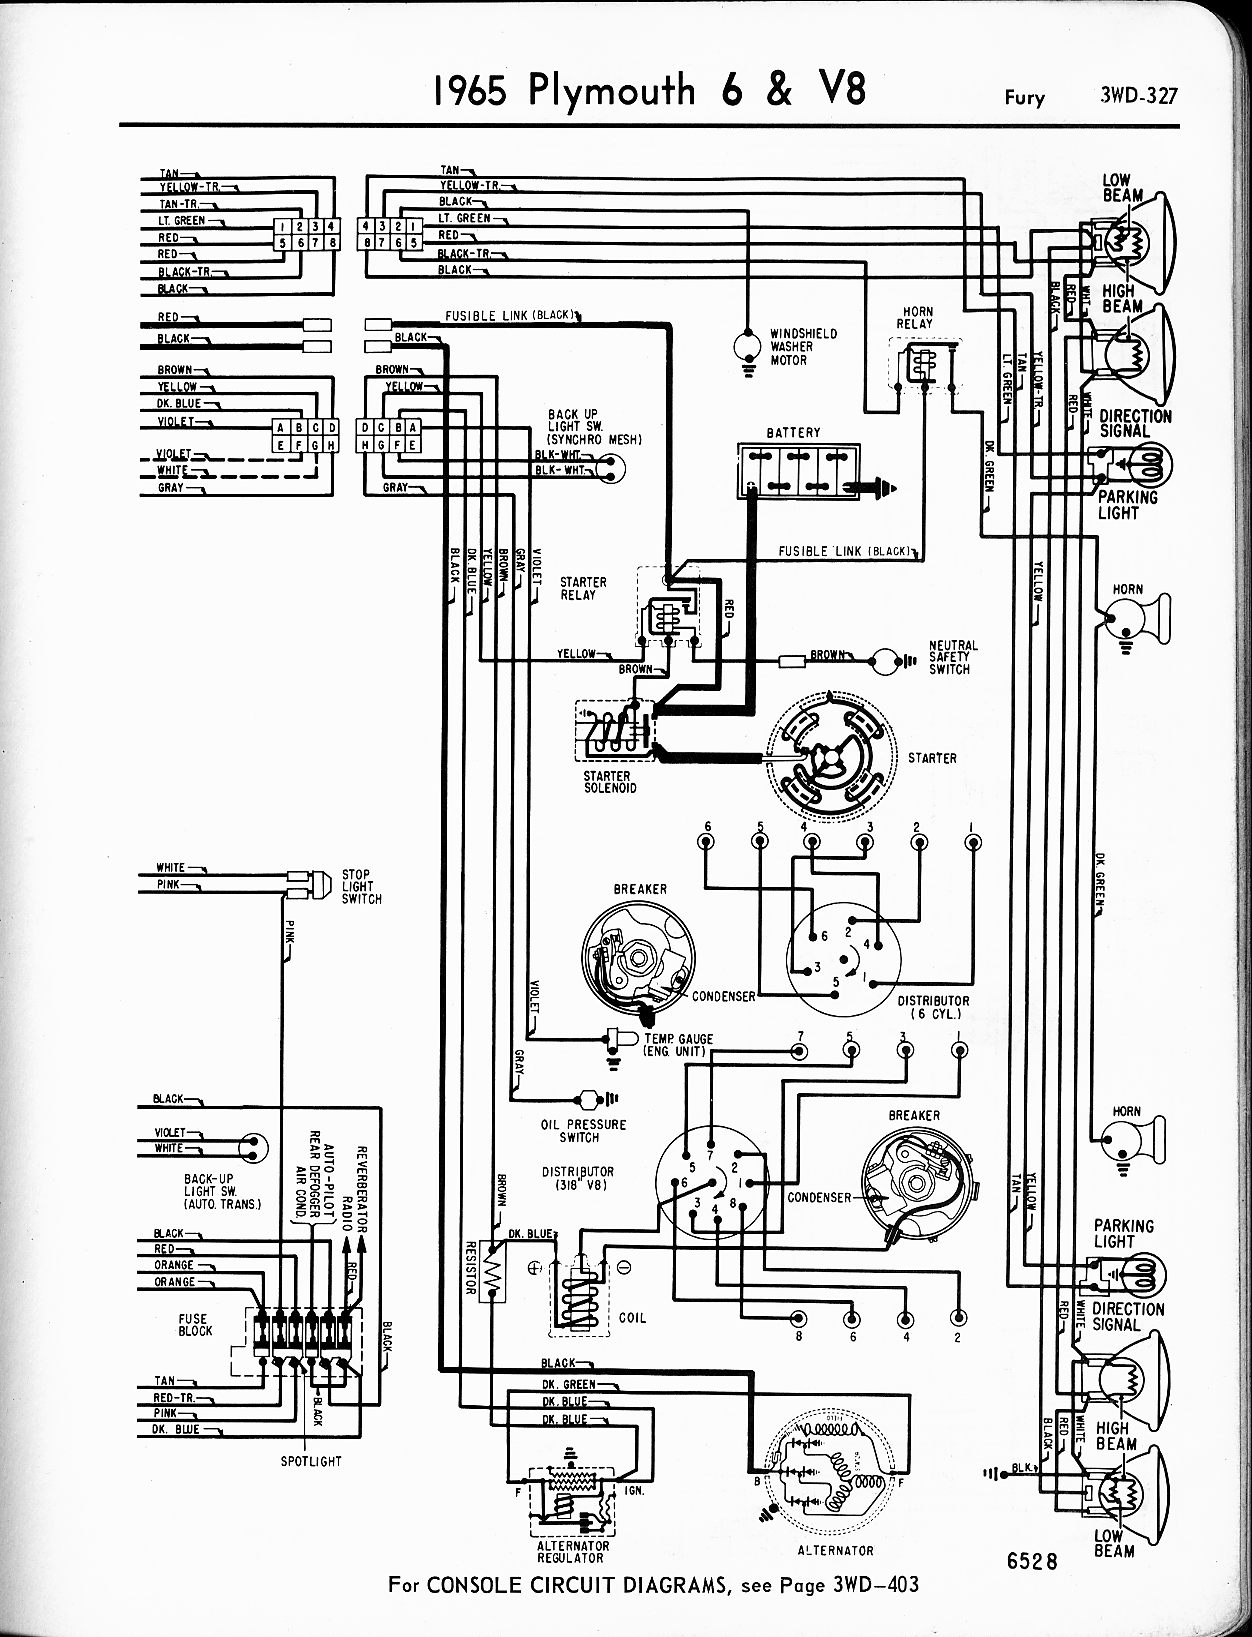 66 mopar wiper wiring diagram wiring diagram EZ Wiring Harness 66 mopar wiper wiring diagram wiring diagram library66 mopar wiper wiring diagram wiring schematic data48 plymouth